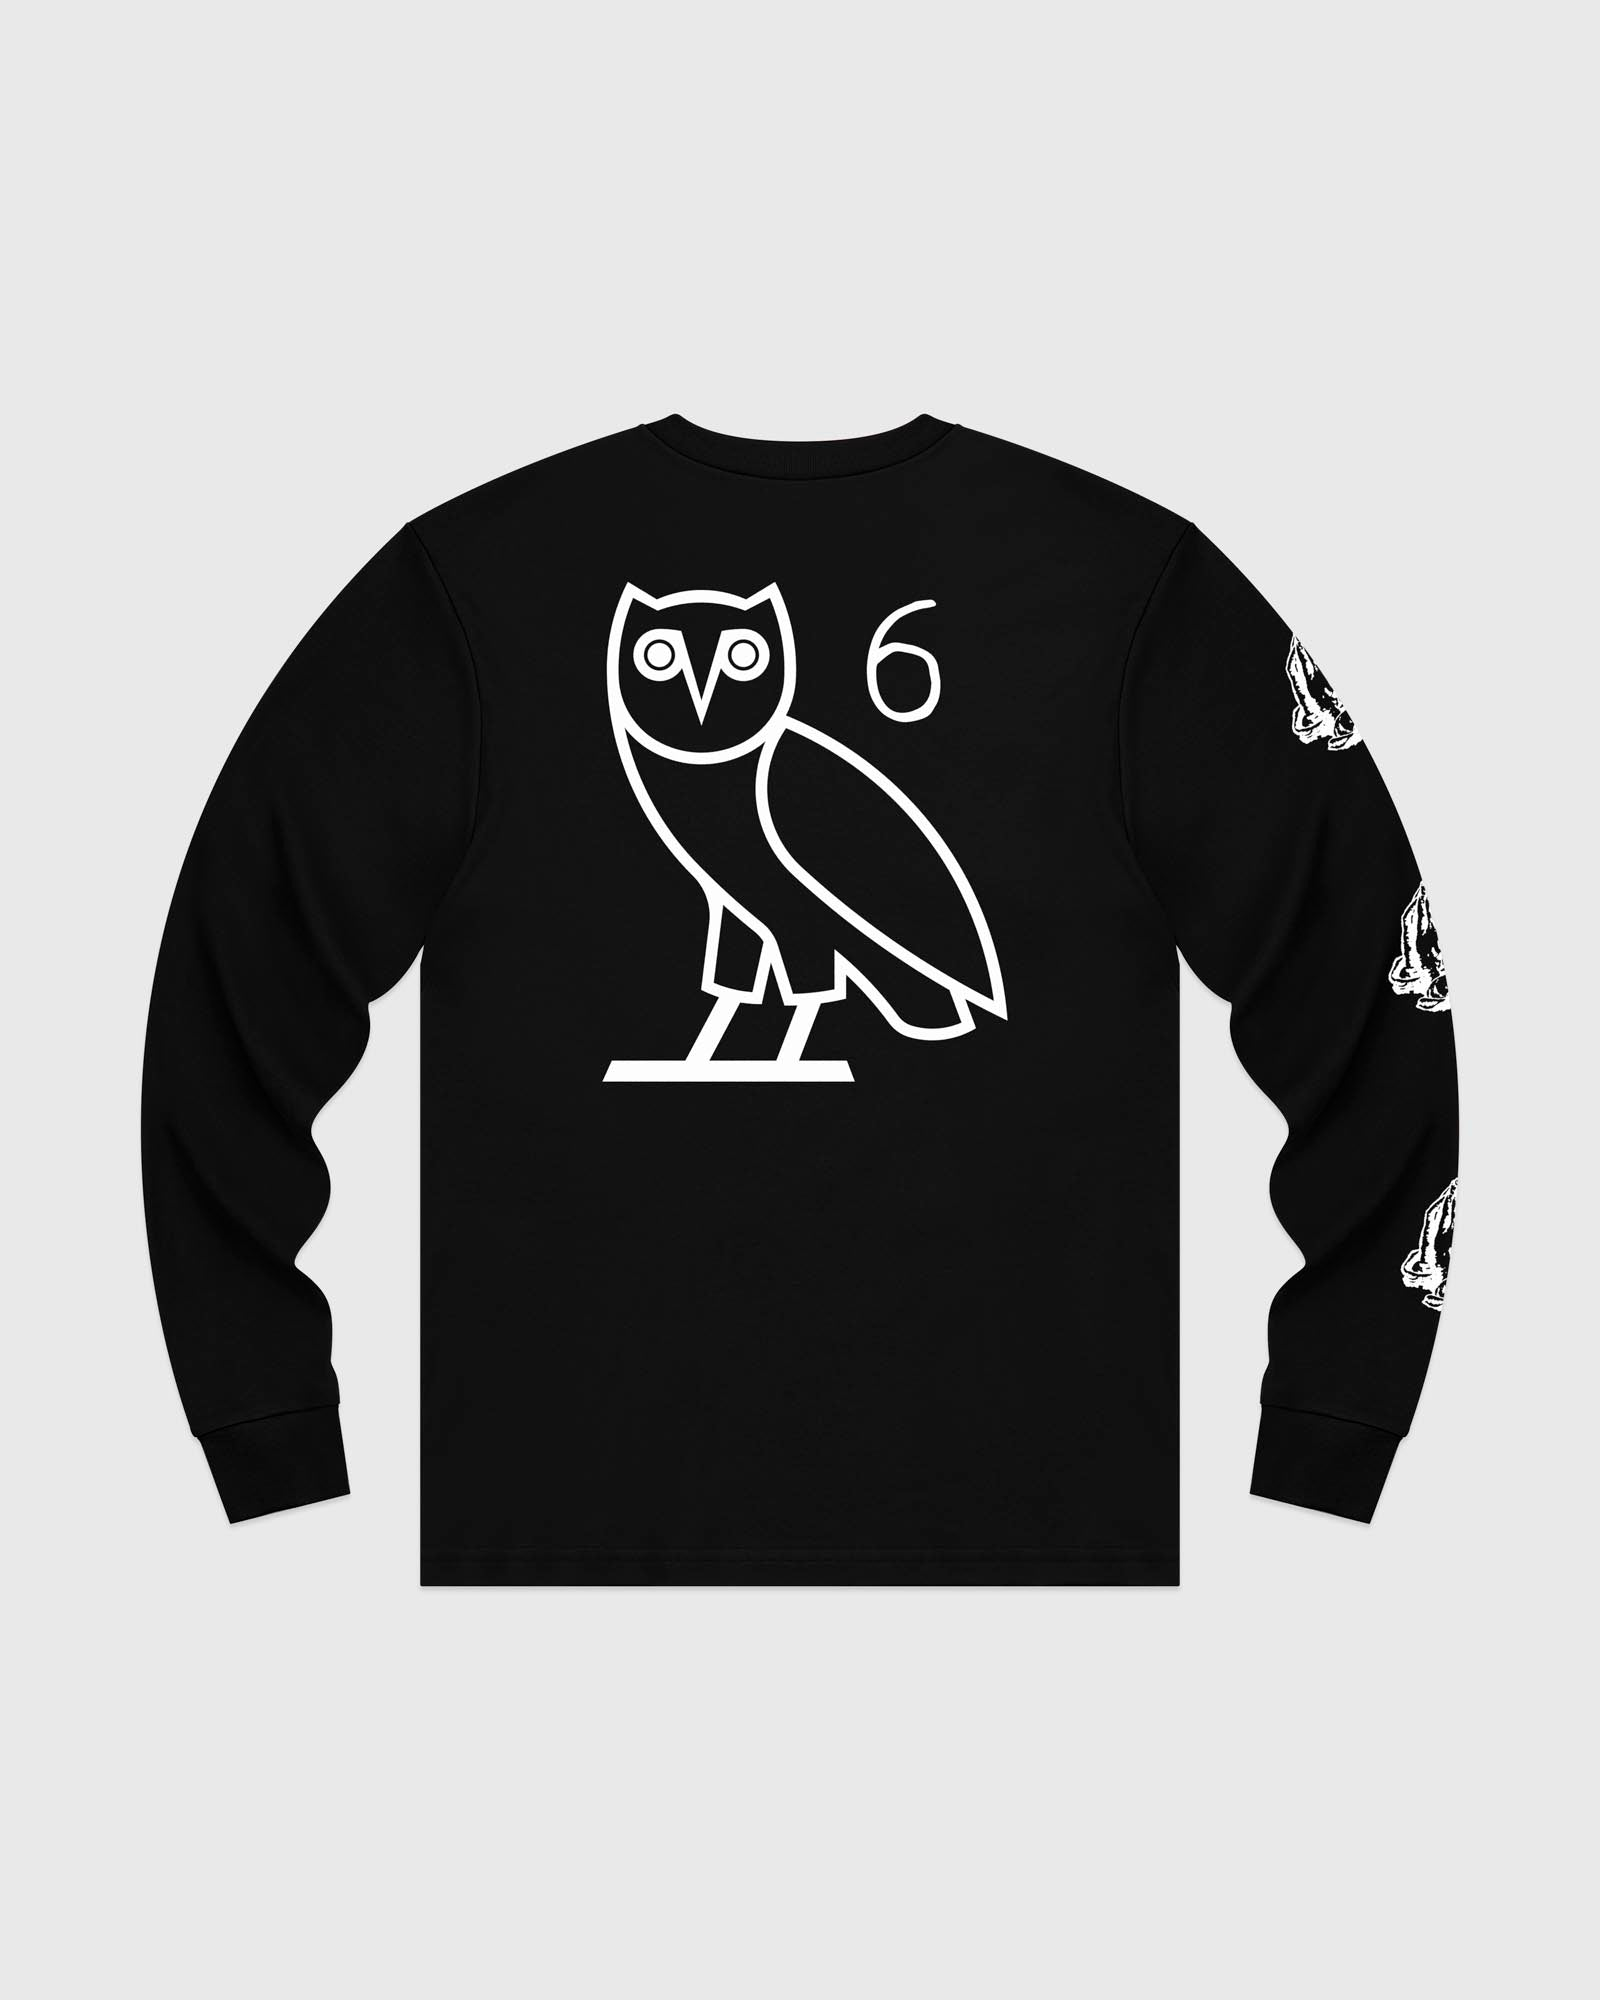 6 OWL LONG SLEEVE T-SHIRT - BLACK IMAGE #5